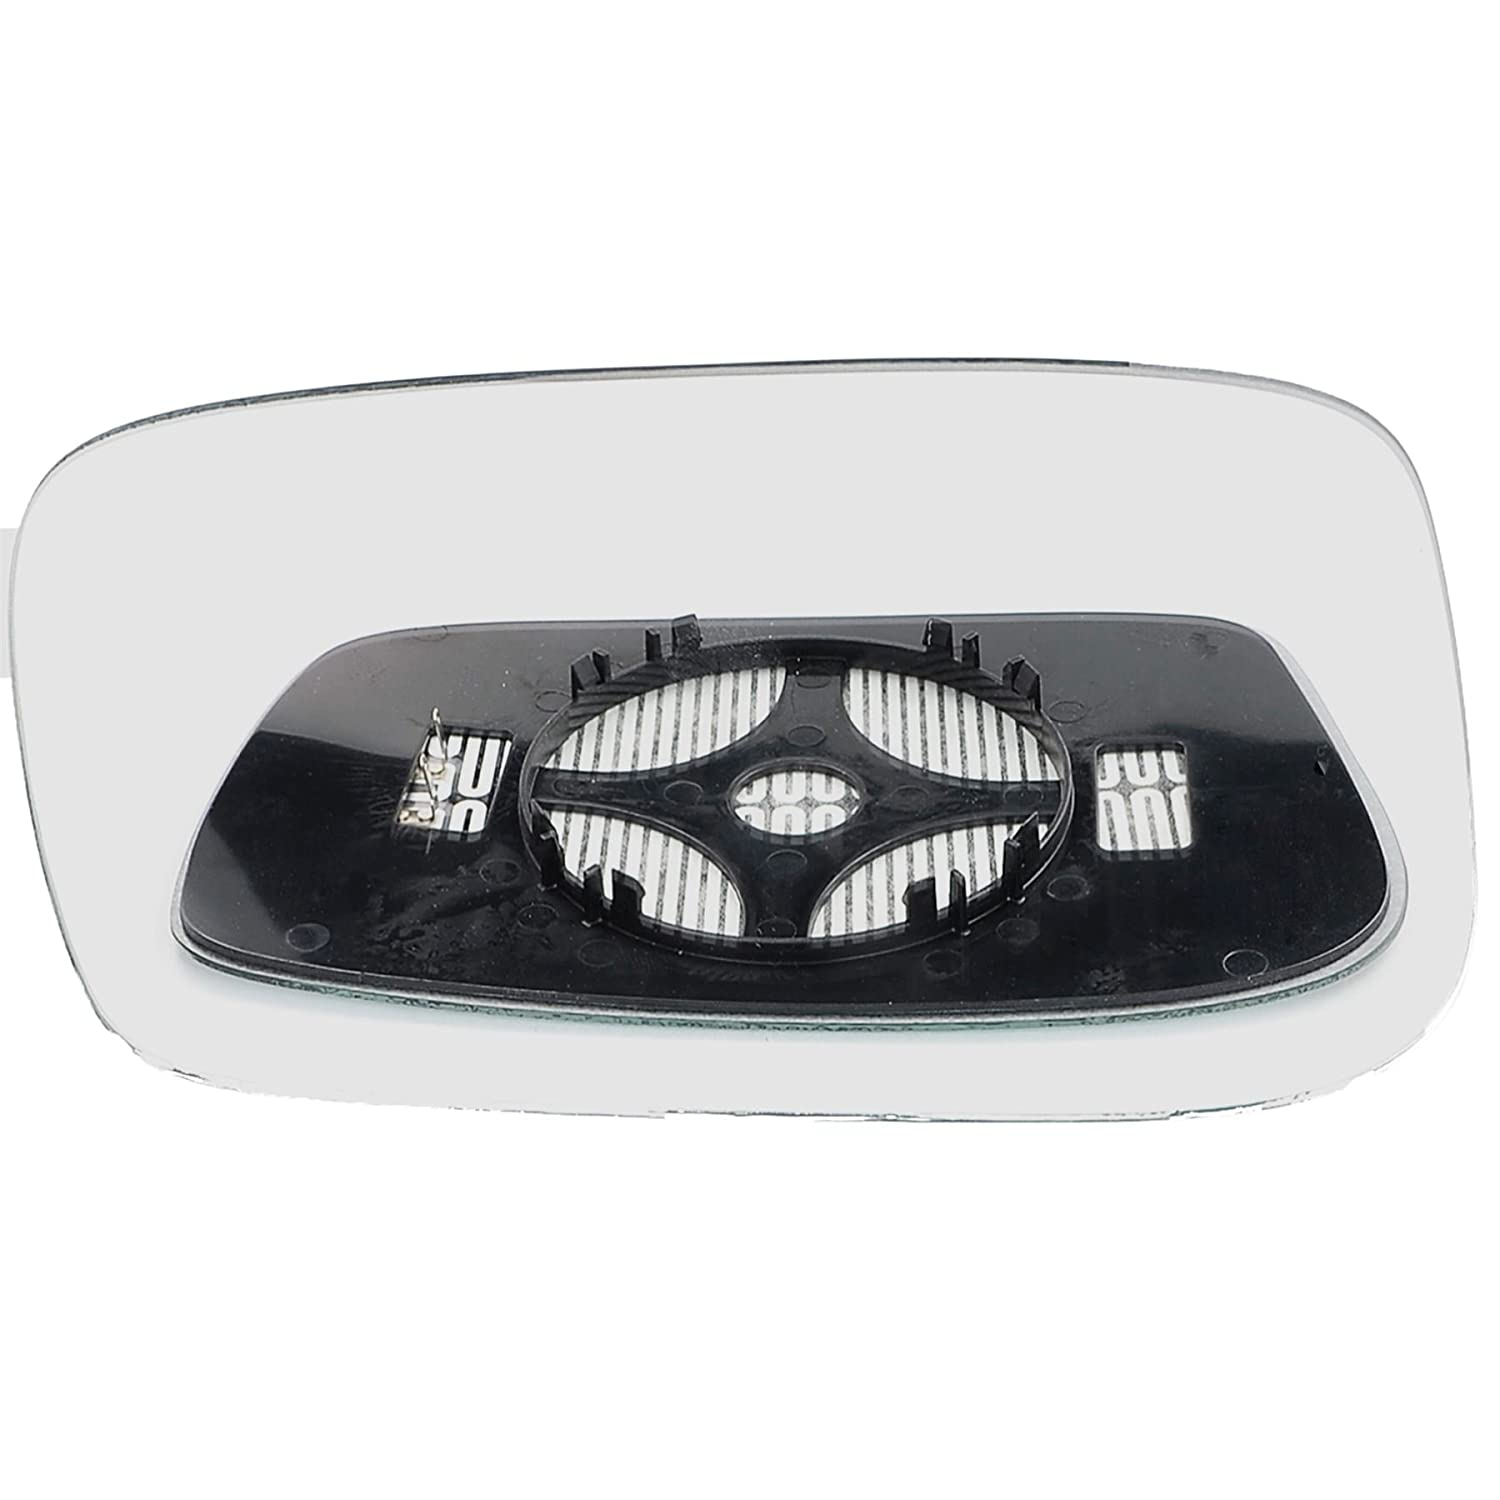 Passenger left hand side Heated wing door Silver mirror glass with backing plate #C-SHY//L-PT80702